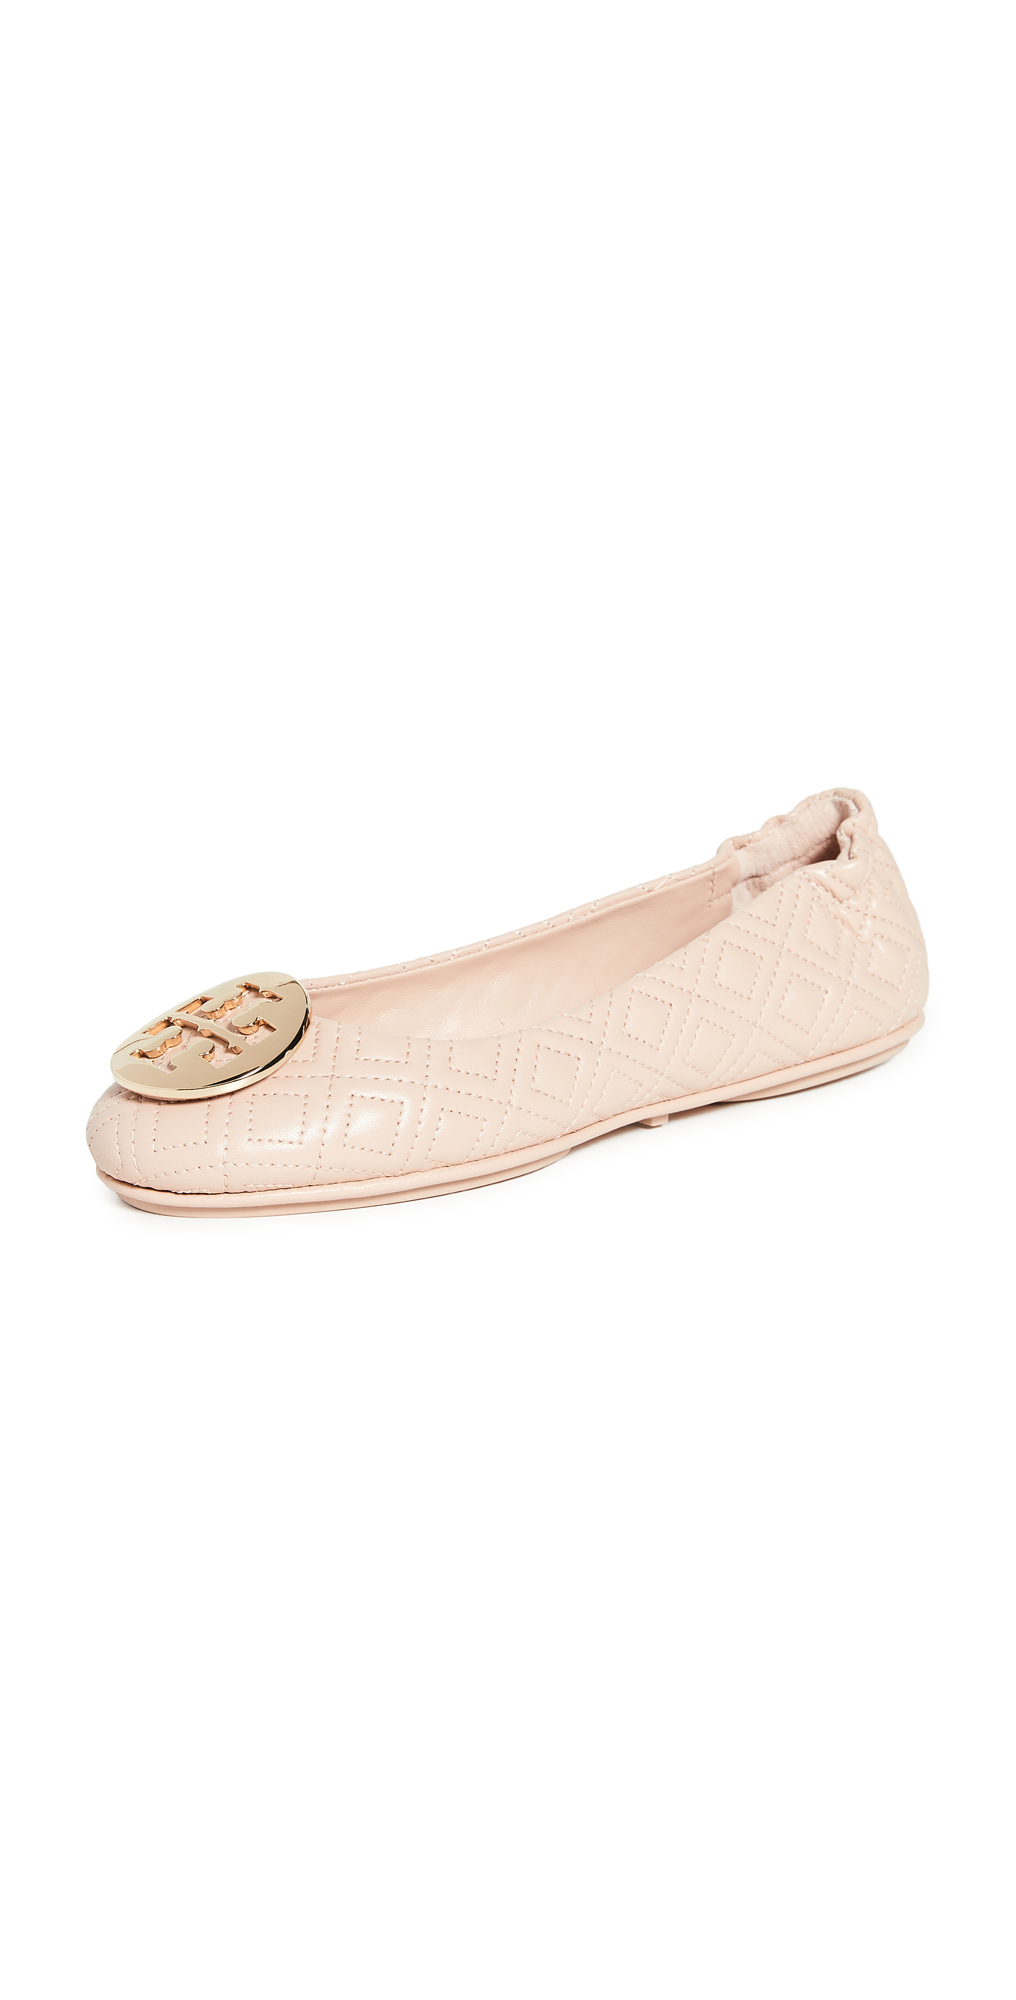 Tory Burch Quilted Minnie Flats